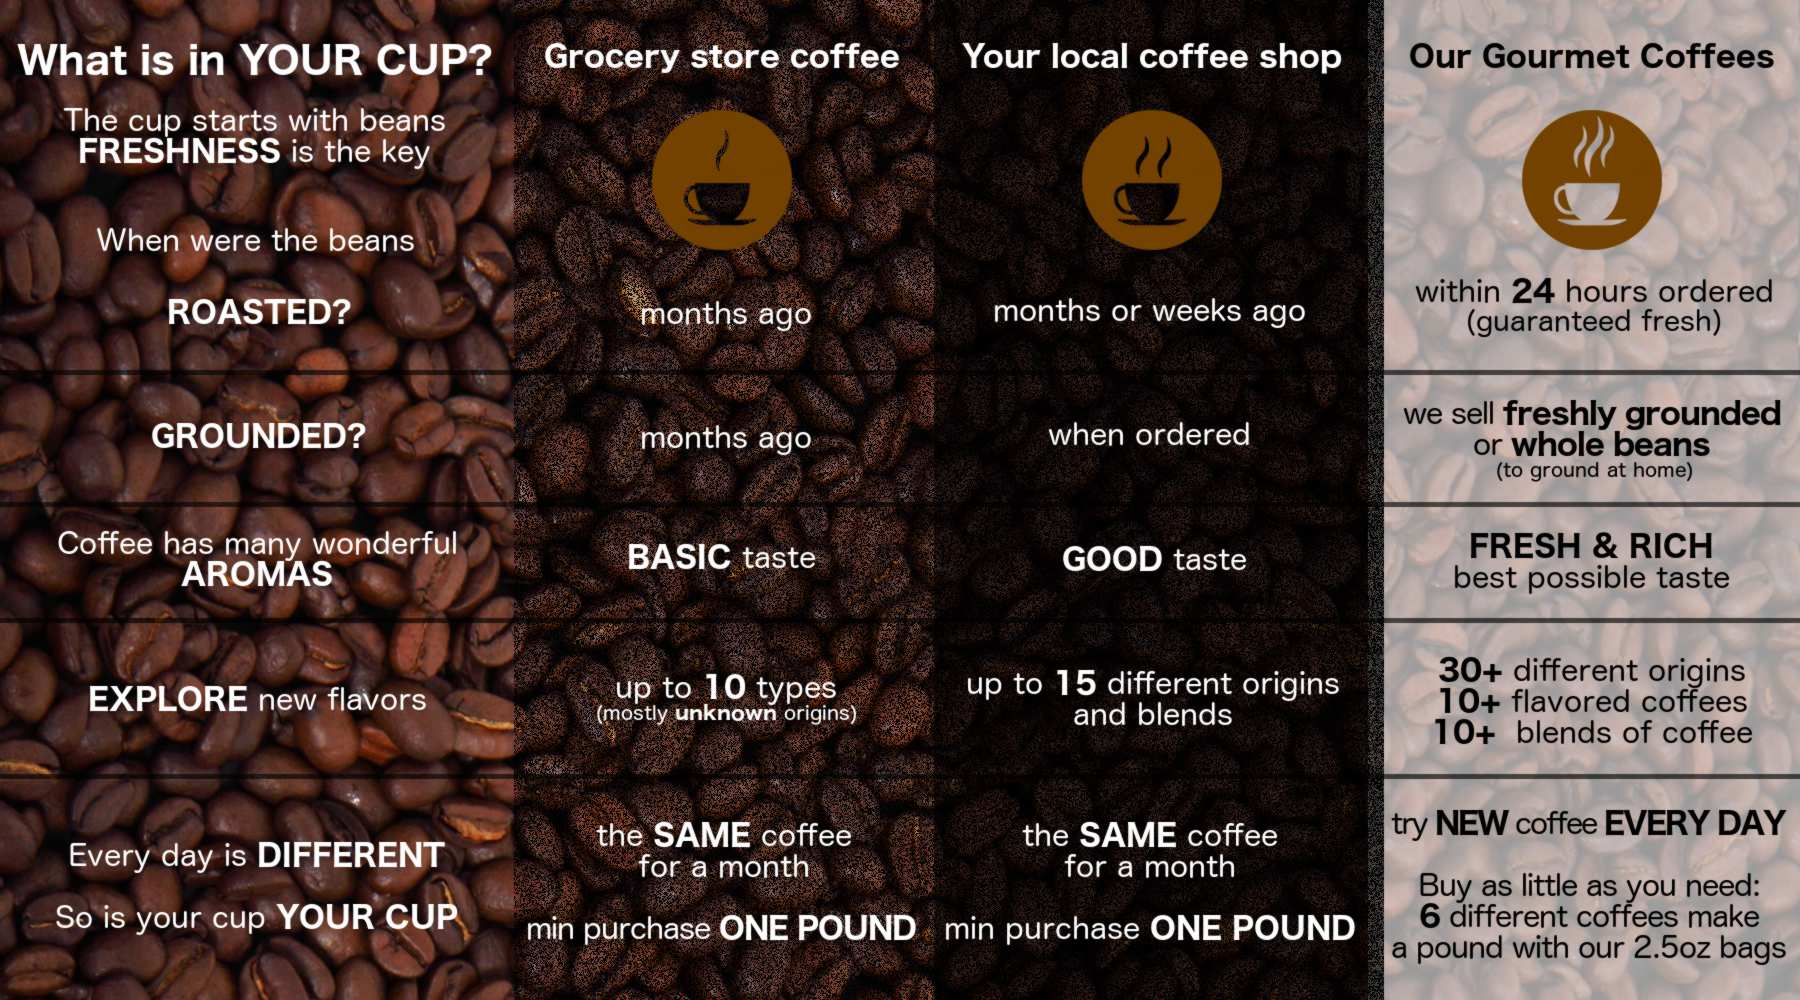 What is in YOUR CUP? Compare gourmet coffee to other options